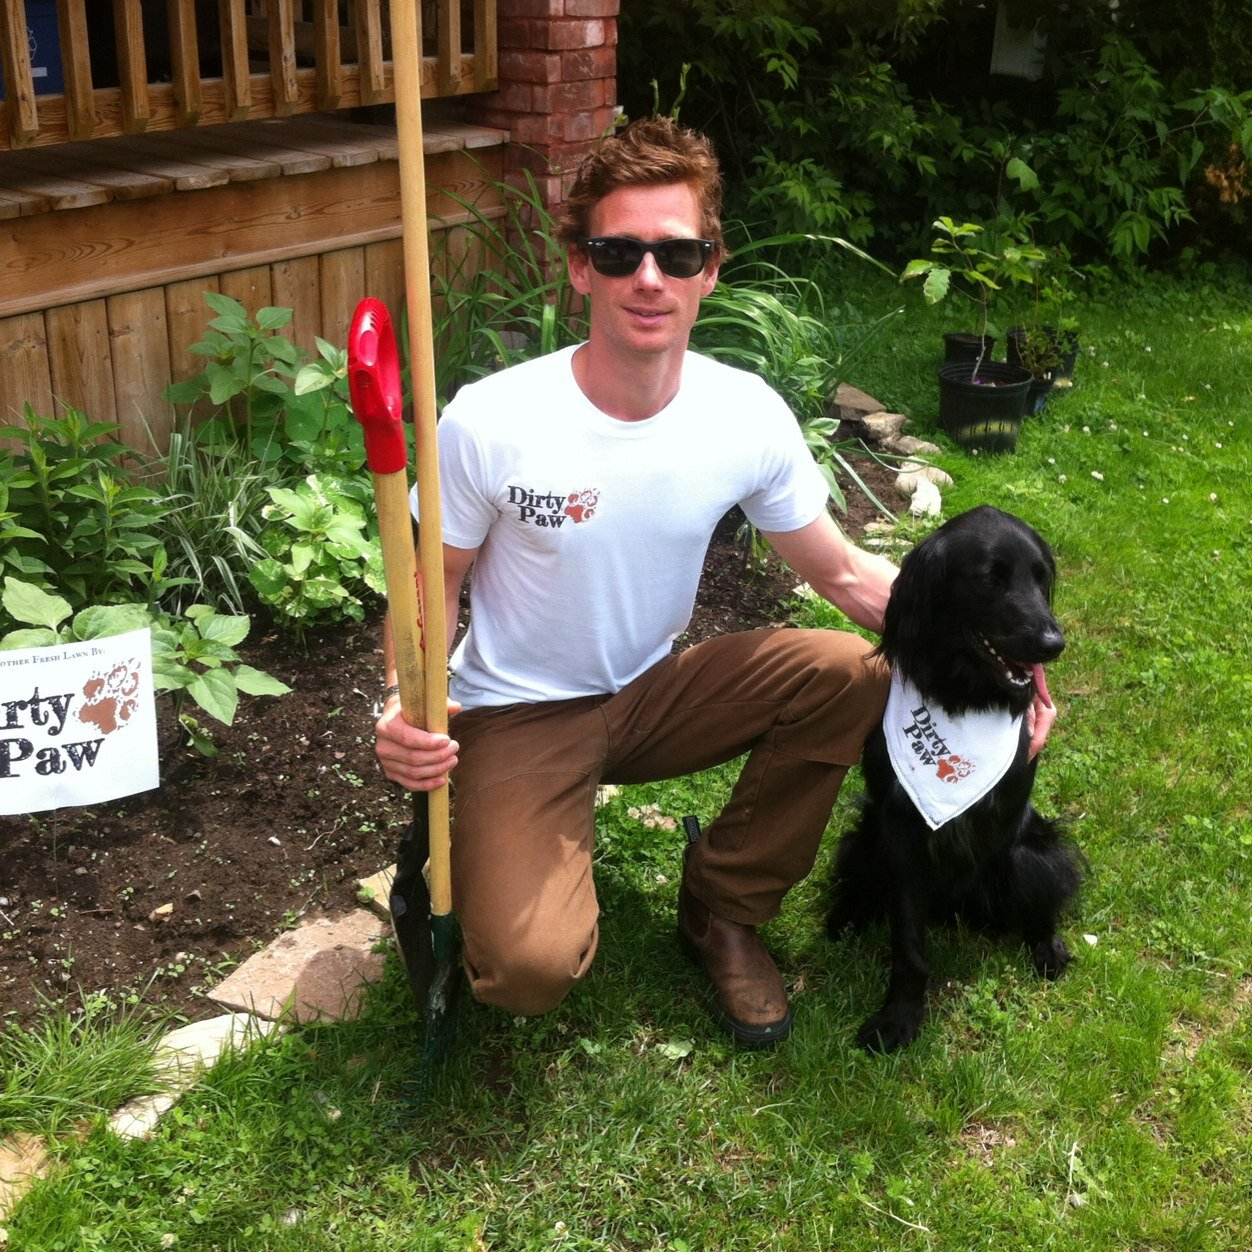 Aran and Scout (picture via @DirtyPawPTBO)